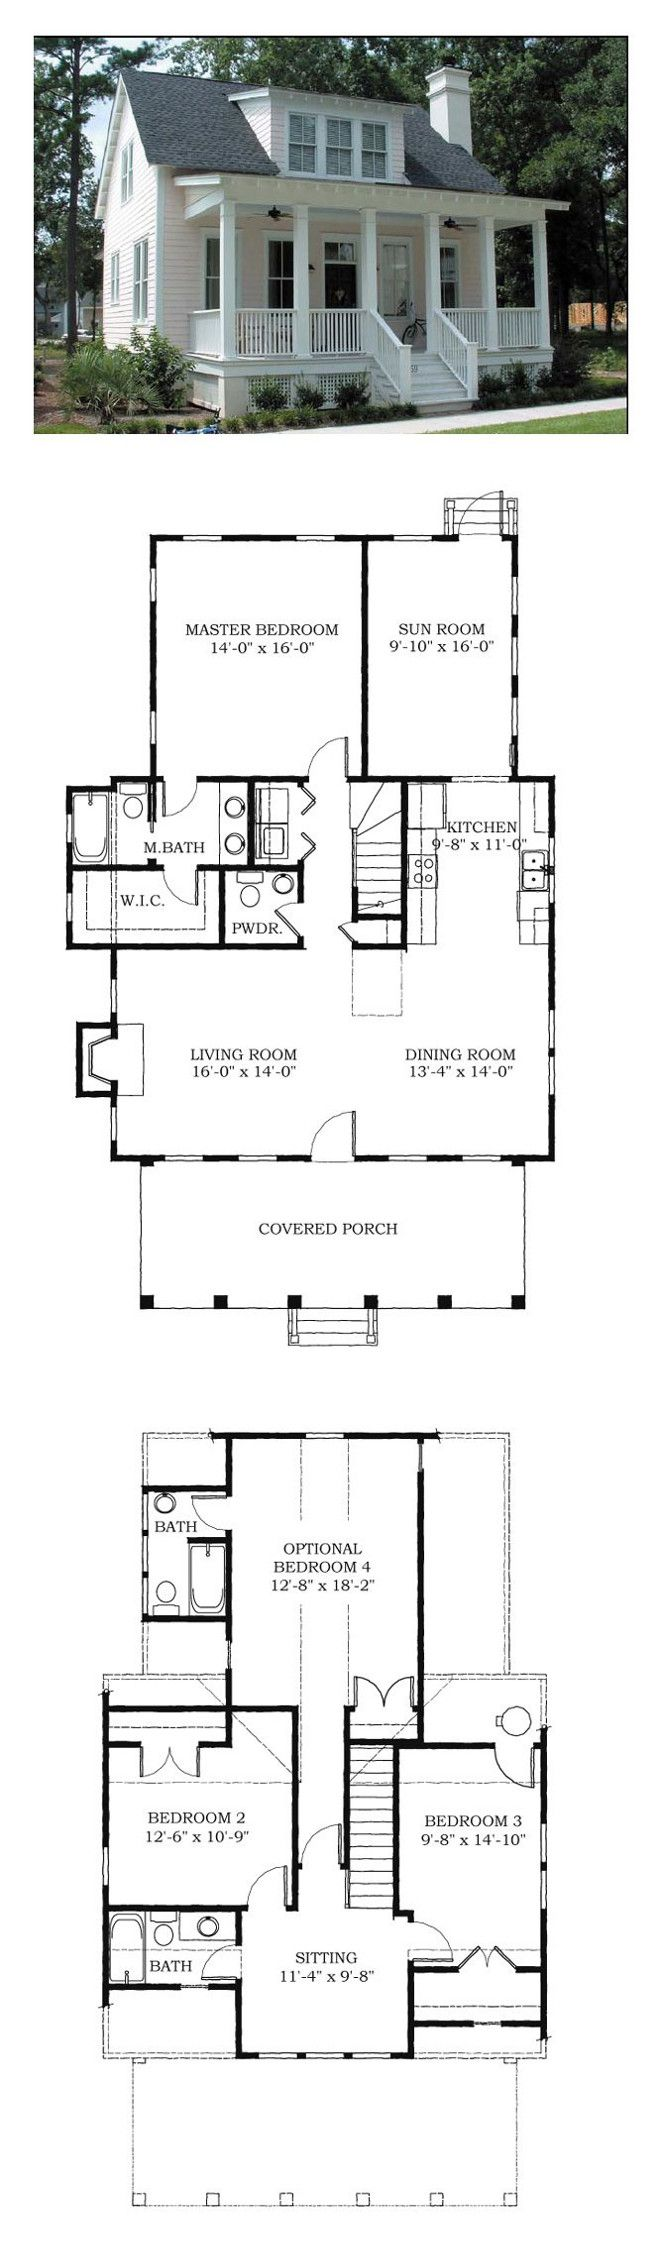 Best 25+ House Floor Plans Ideas On Pinterest | House Blueprints, Home  Floor Plans And Architectural Floor Plans Part 93